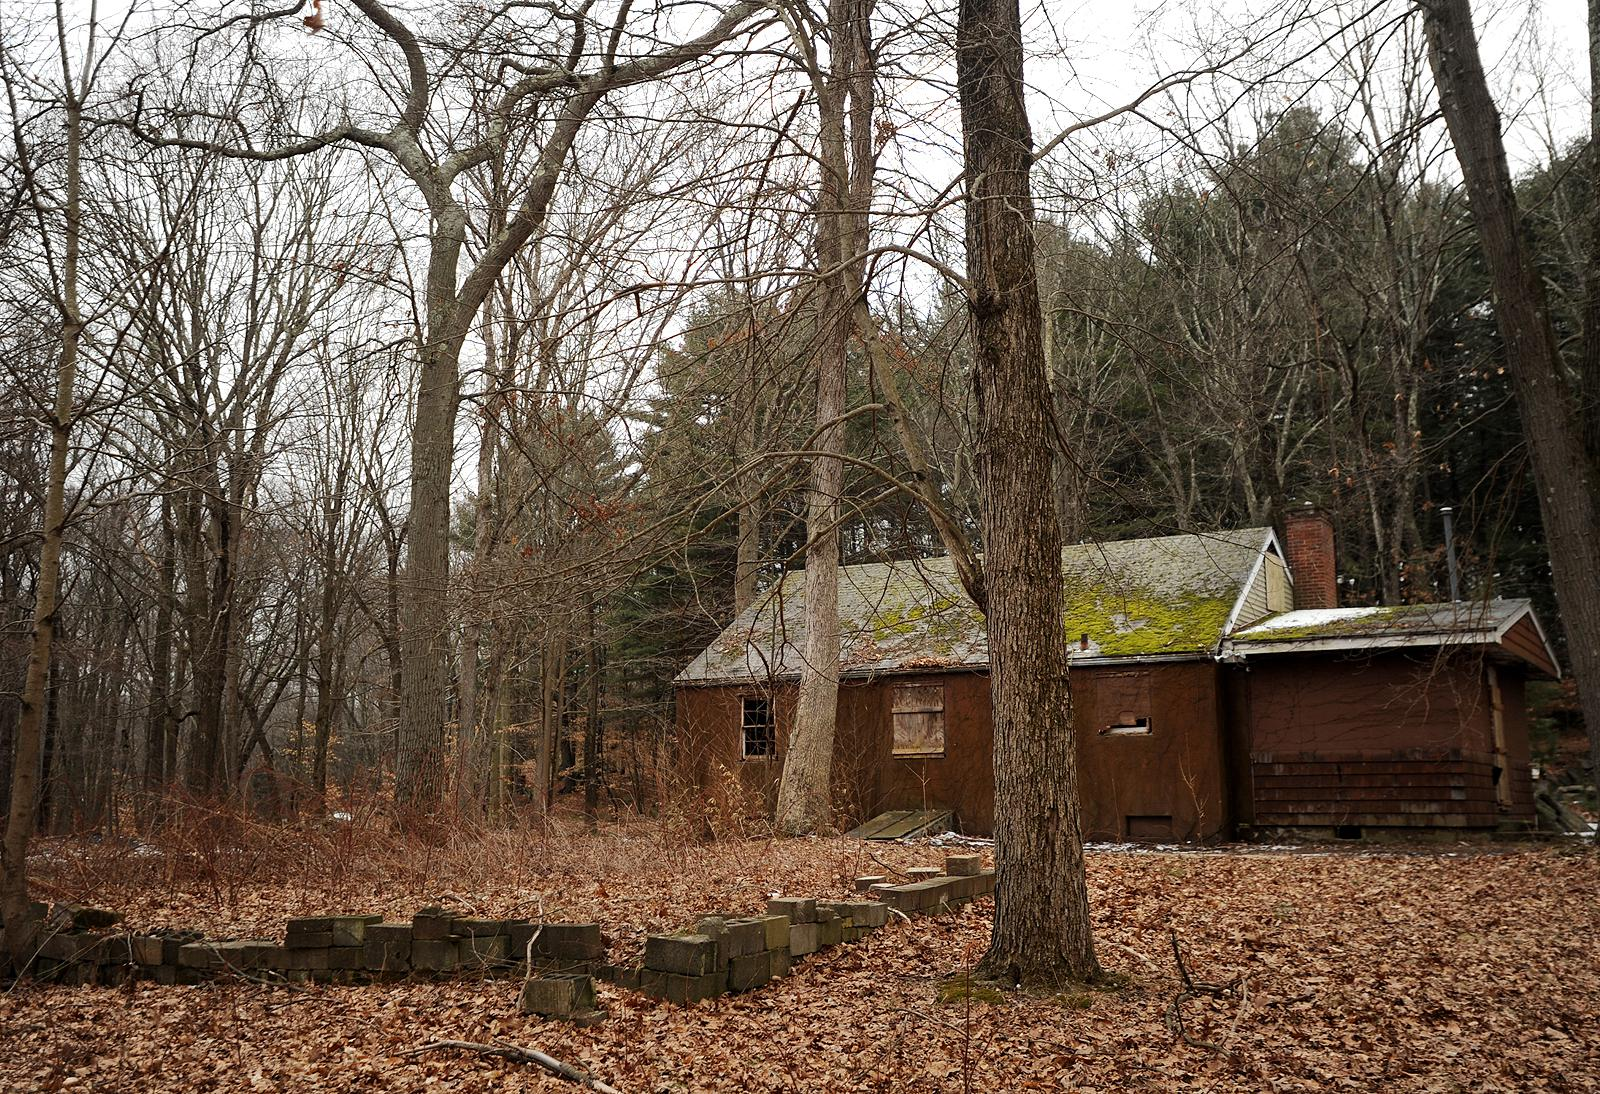 Stratford invites residents to hike, bike and like the Roosevelt Forest event